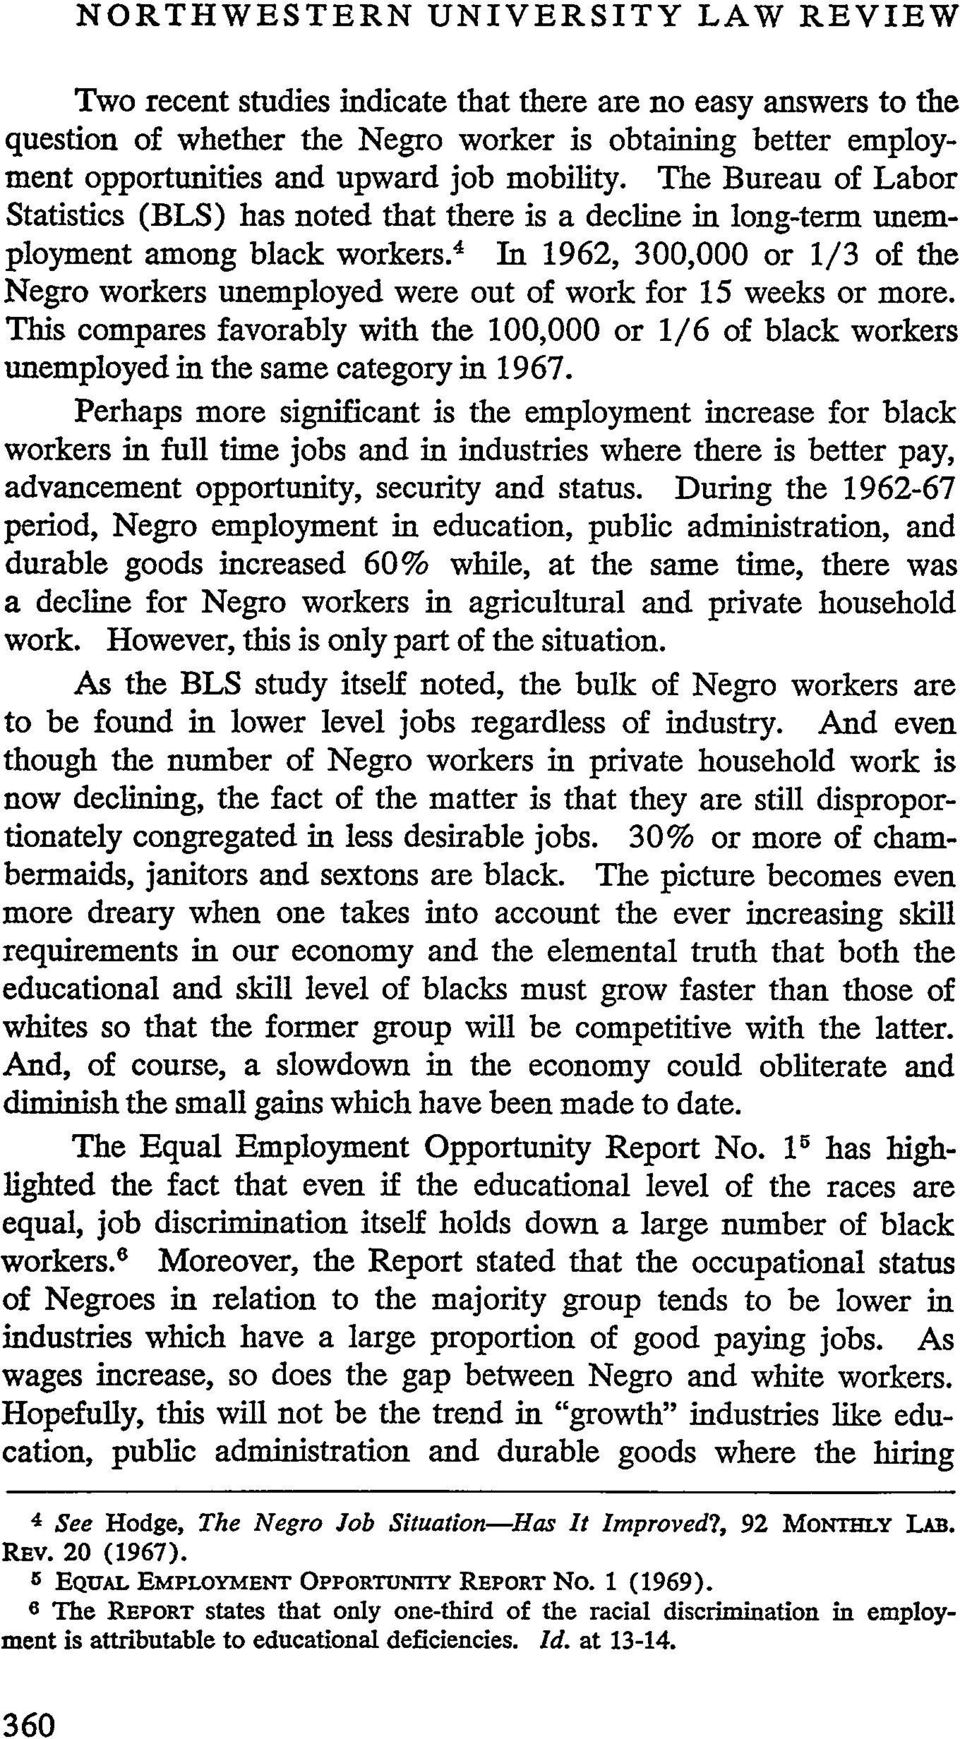 4 In 1962, 300,000 or 1/3 of the Negro workers unemployed were out of work for 15 weeks or more.